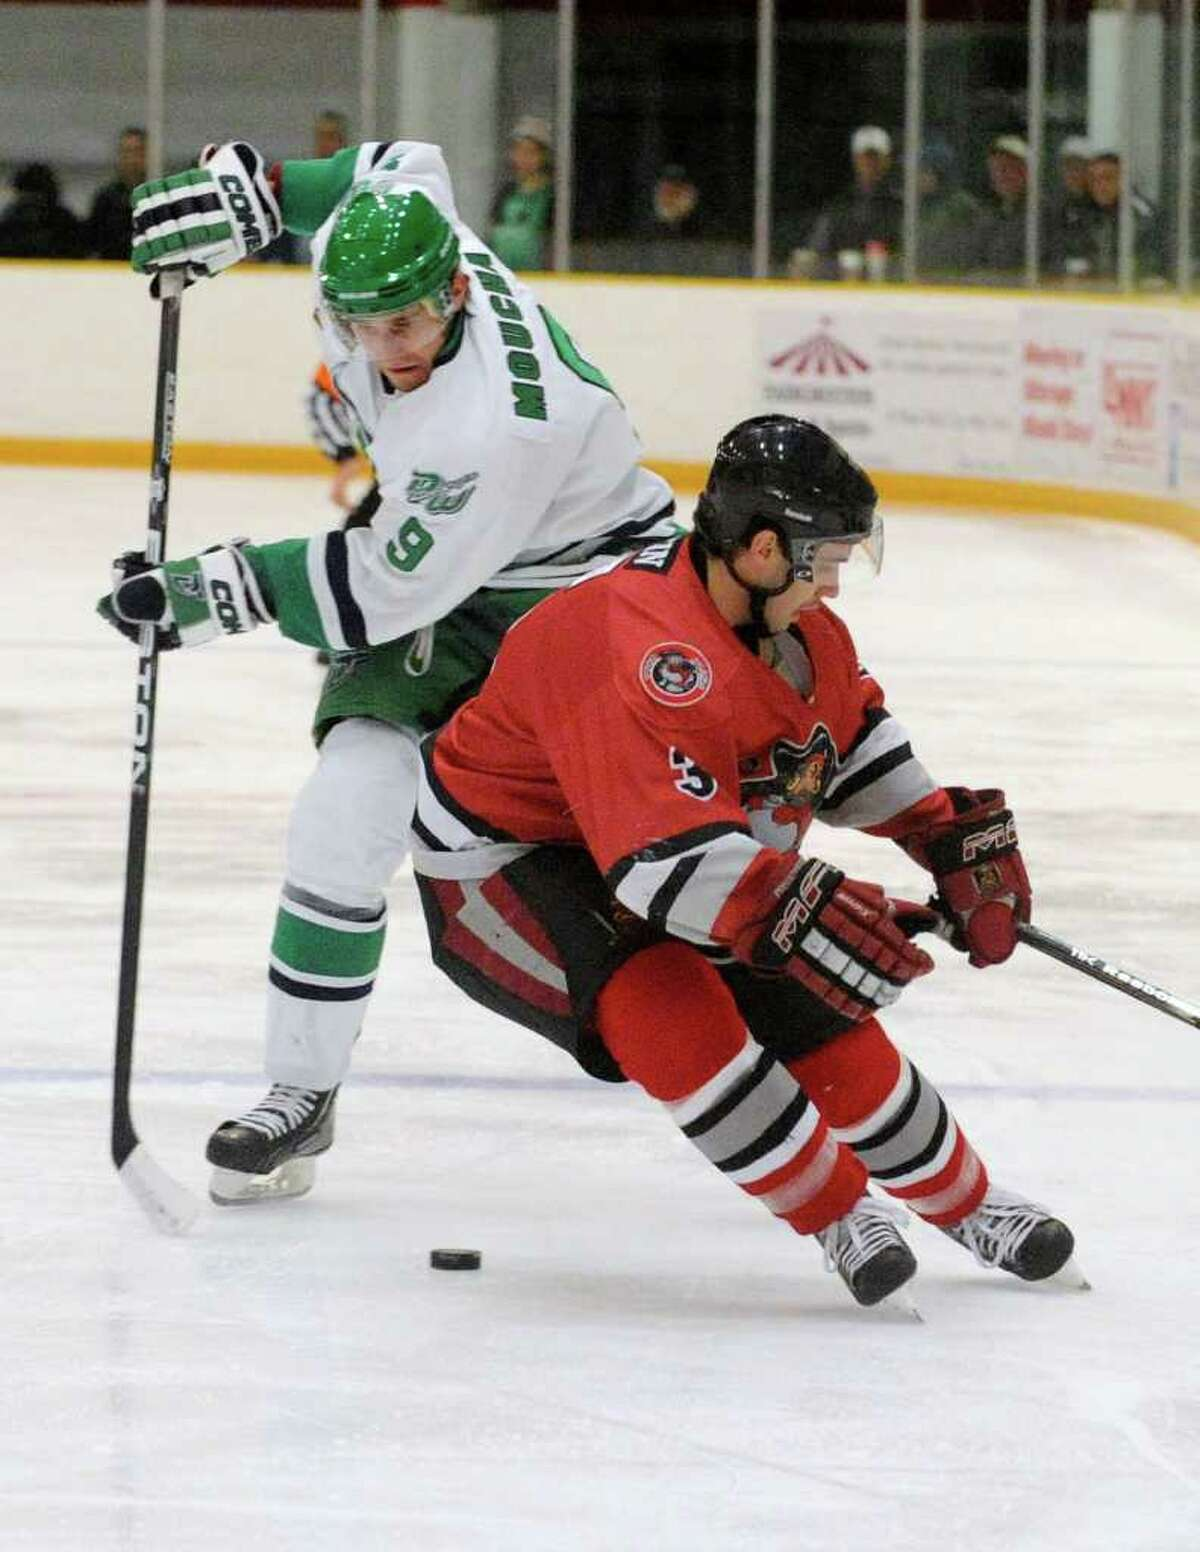 The Danbury Whalers' Martin Moucha tries to get the puck past Thousand Islands' Chad Bazin during their game at Danbury Ice Arena on Friday, Dec. 9, 2011.